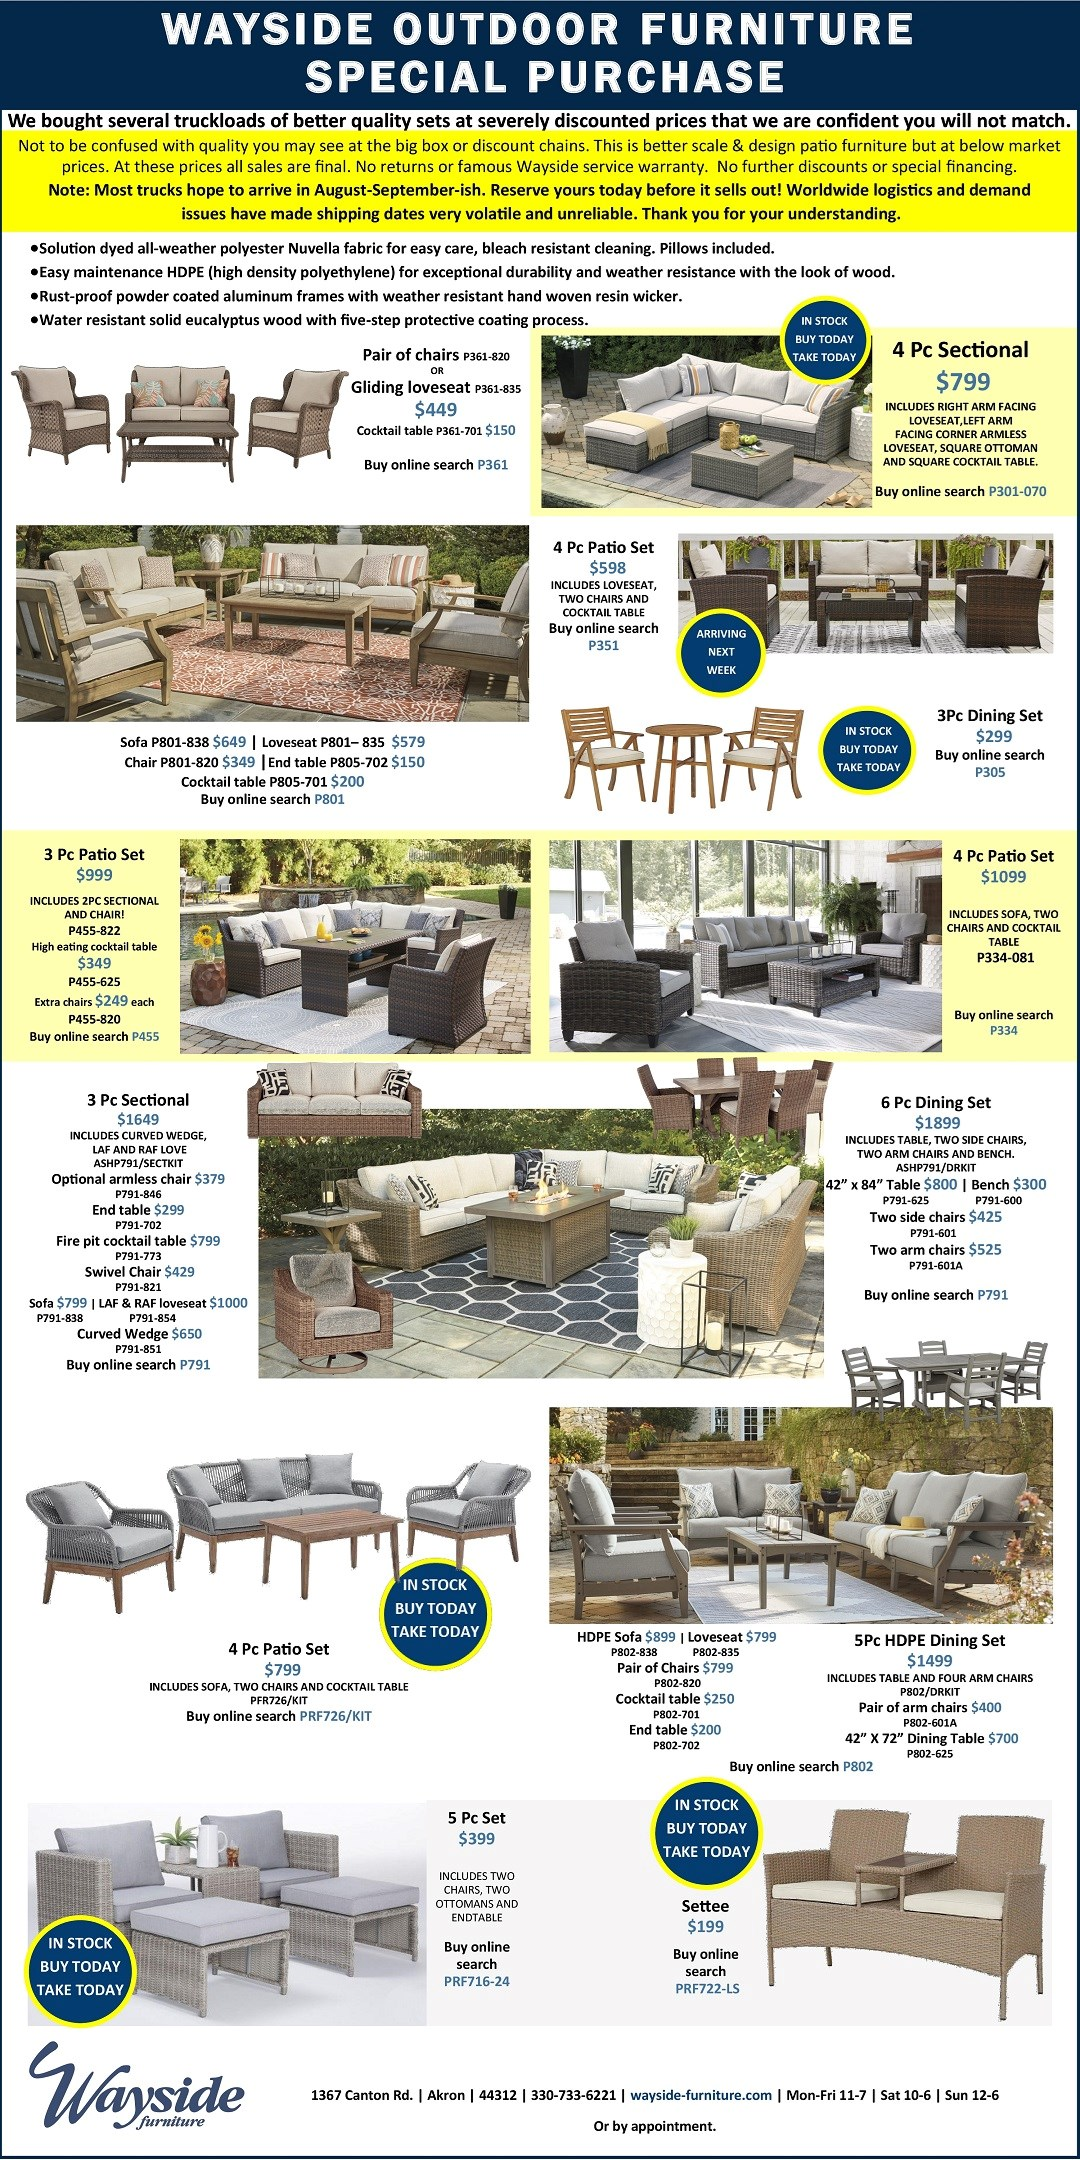 outdoor furniture special purchase